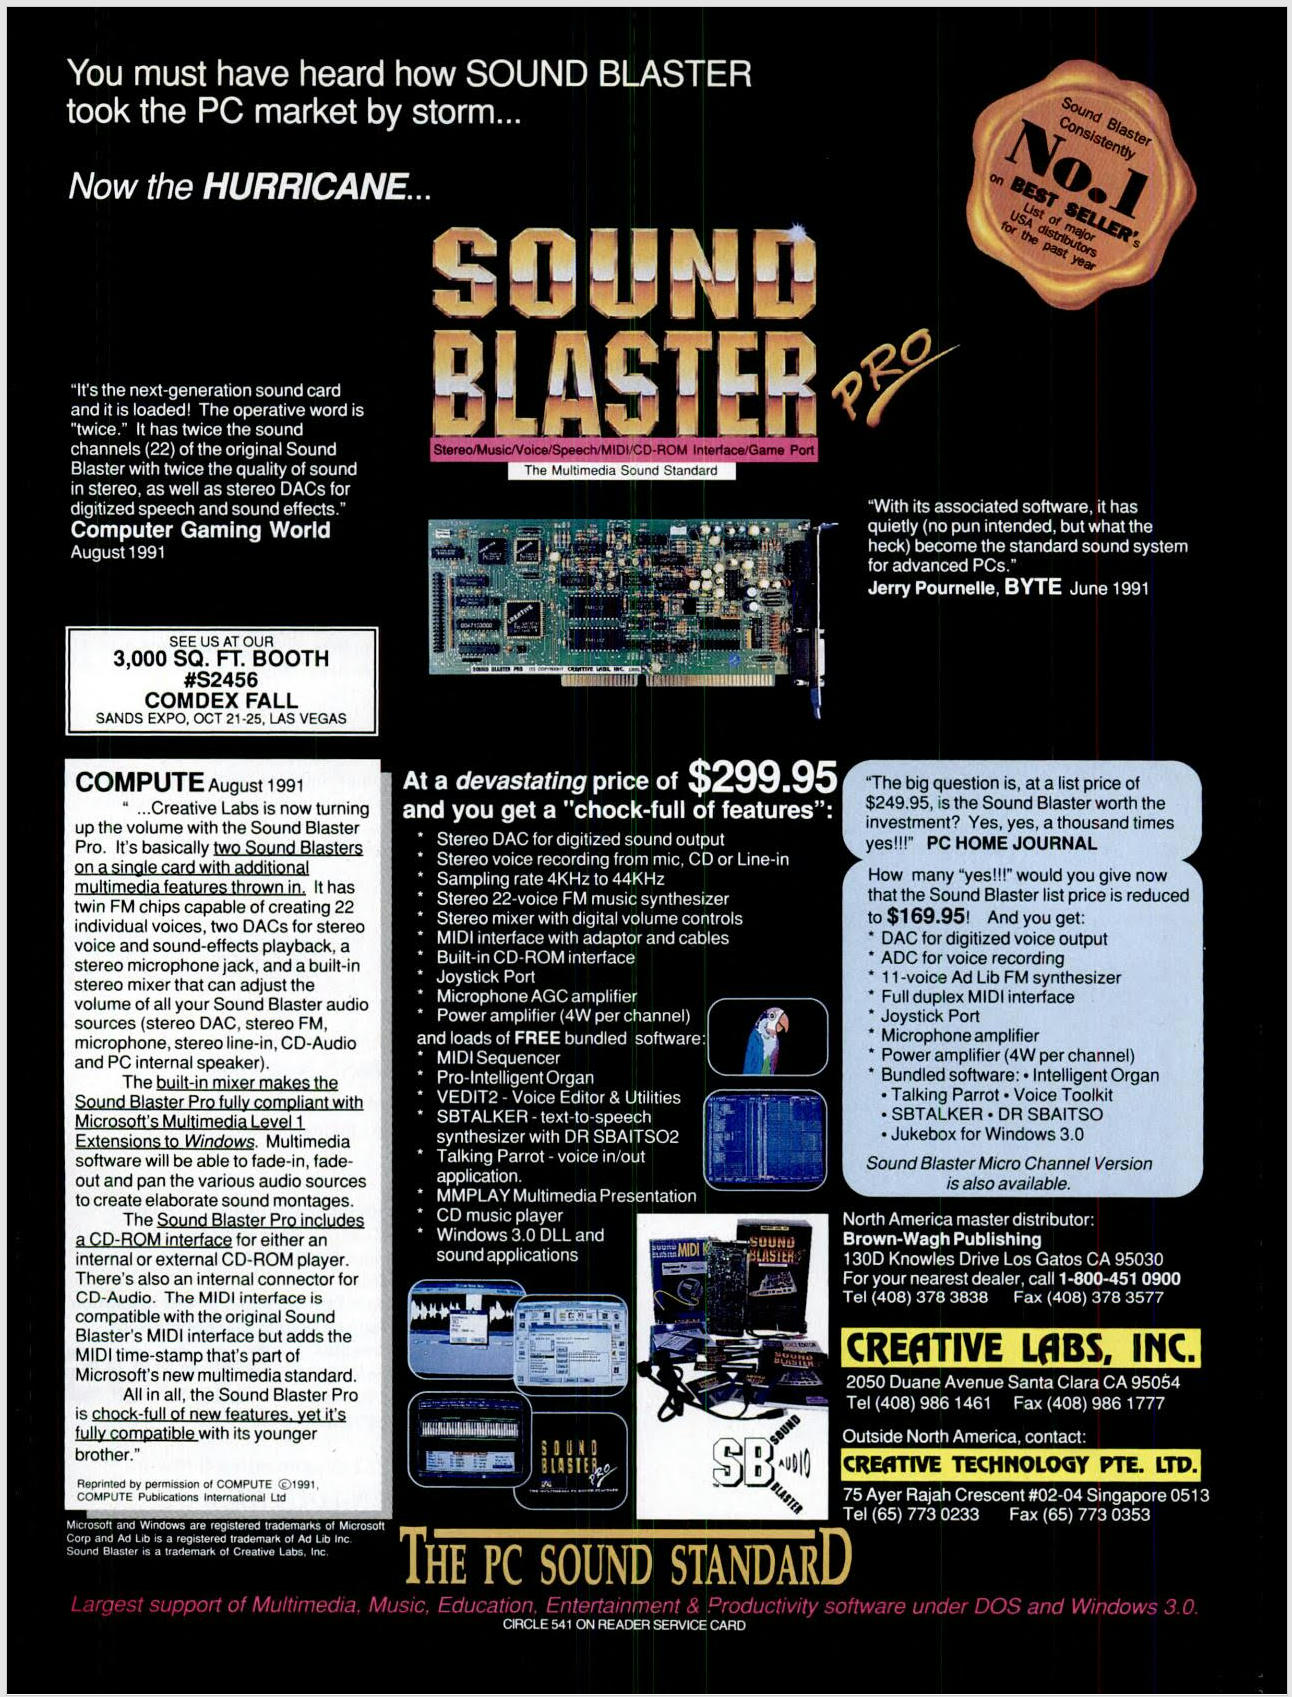 VOGONS • View topic - Sound Blaster Timeline